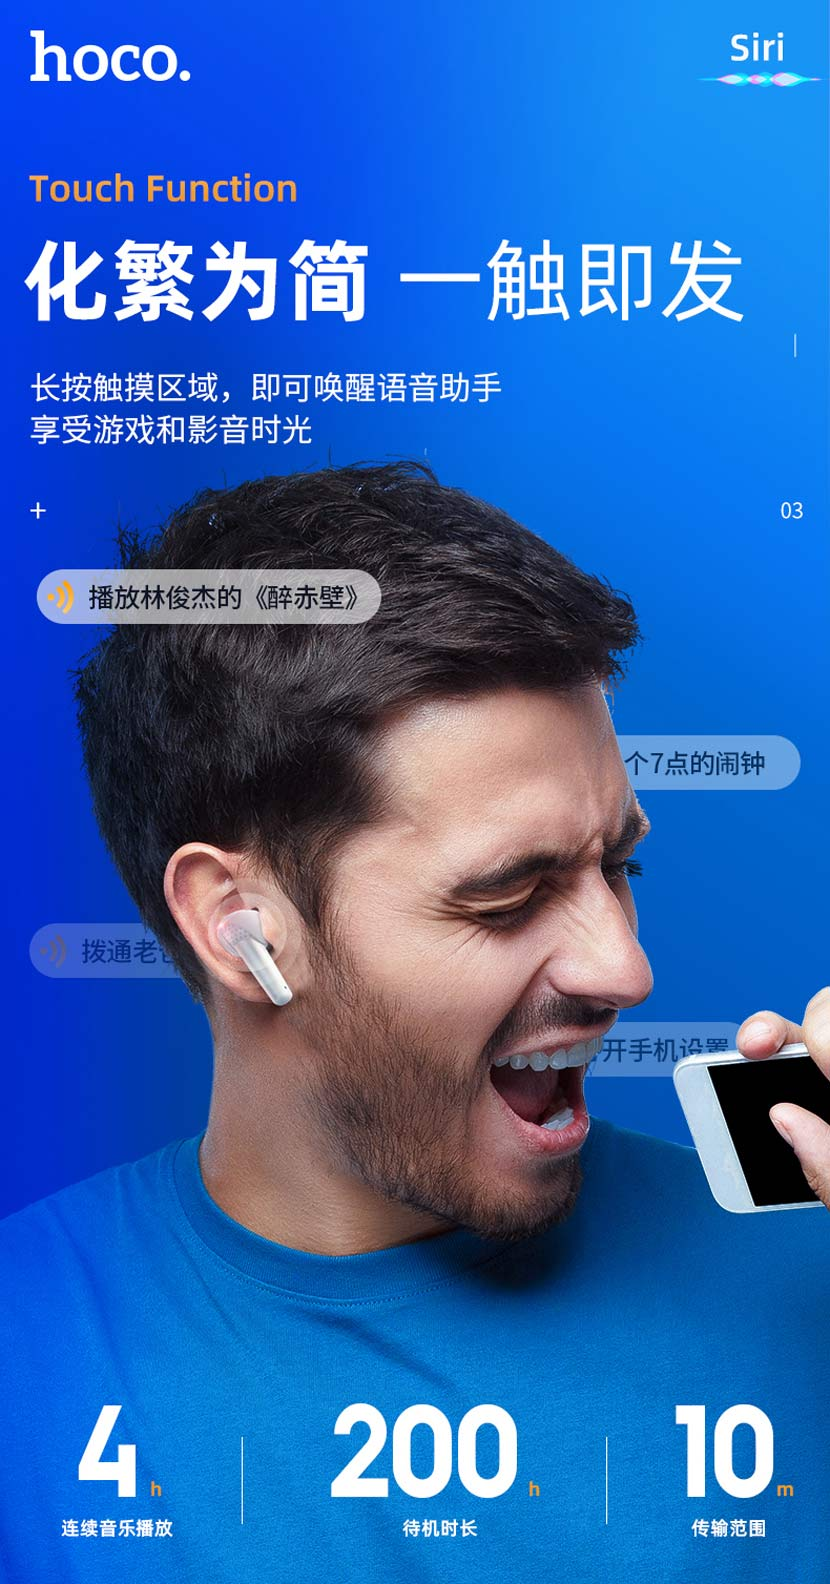 hoco news es55 songful tws dual moving coil wireless bt headset voice assistant cn